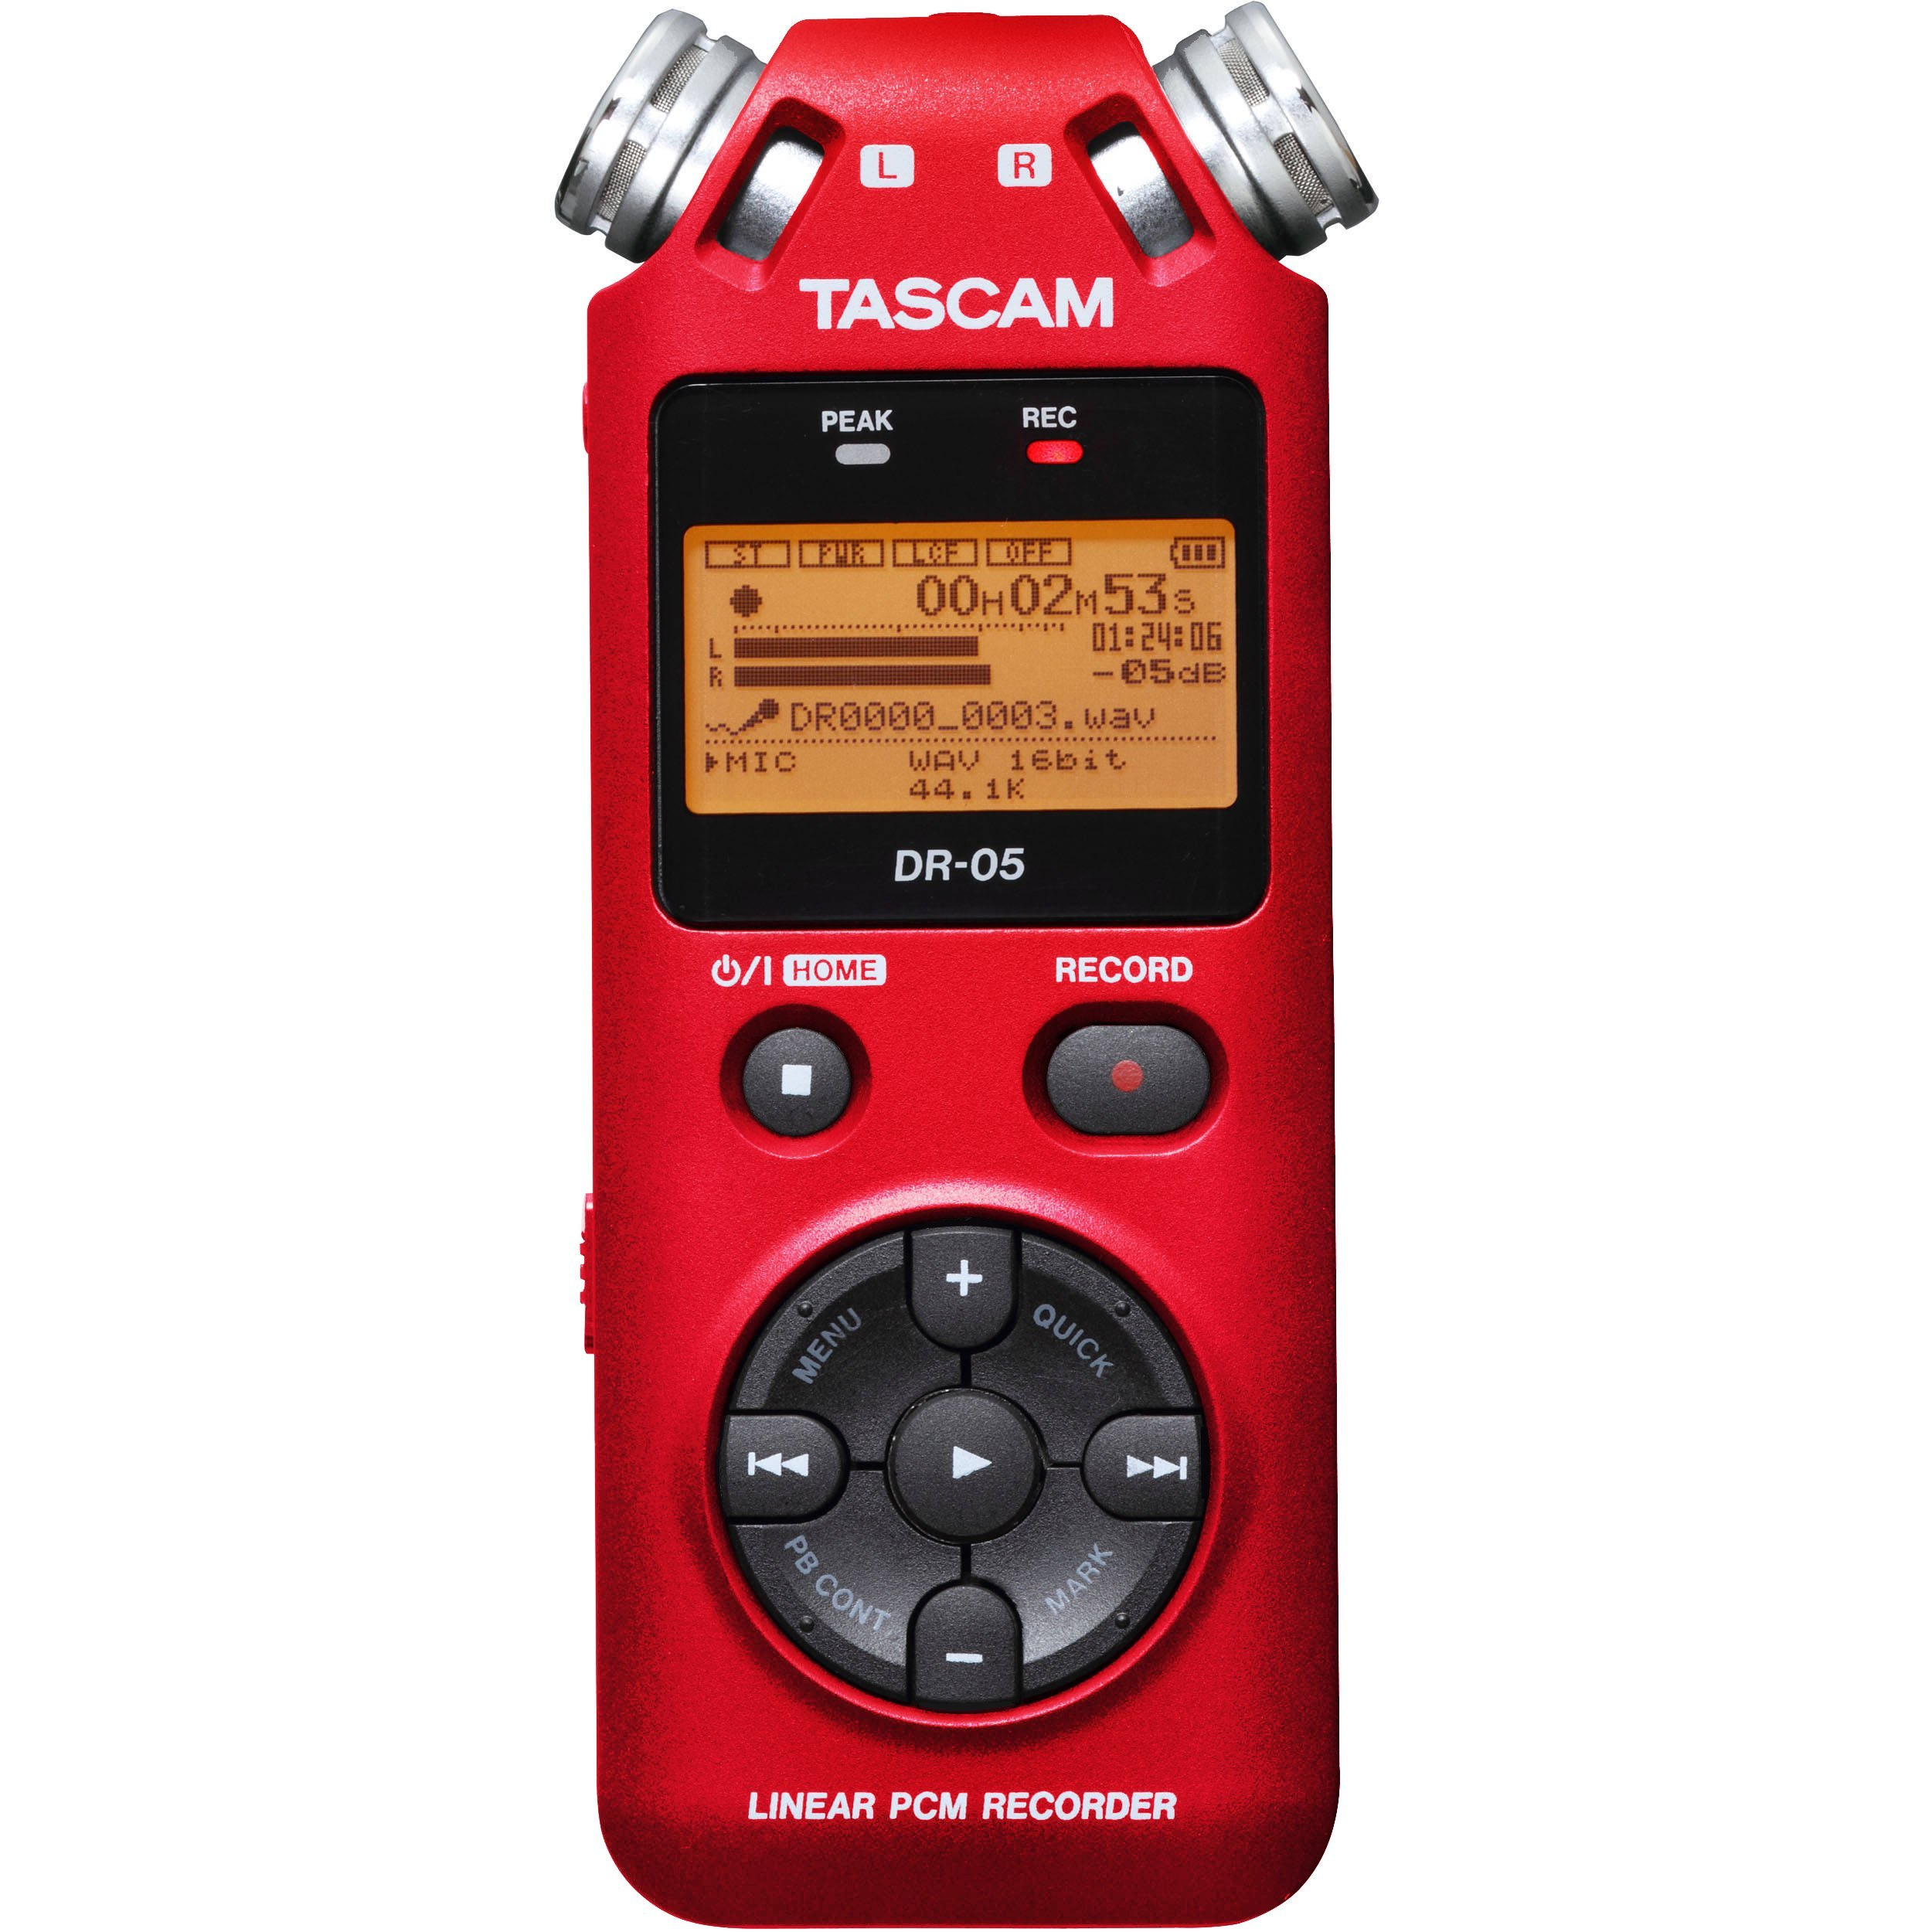 Tascam DR-05 Portable Handheld Digital Audio Recorder (Red) with Deluxe accessory bundle by Tascam (Image #2)